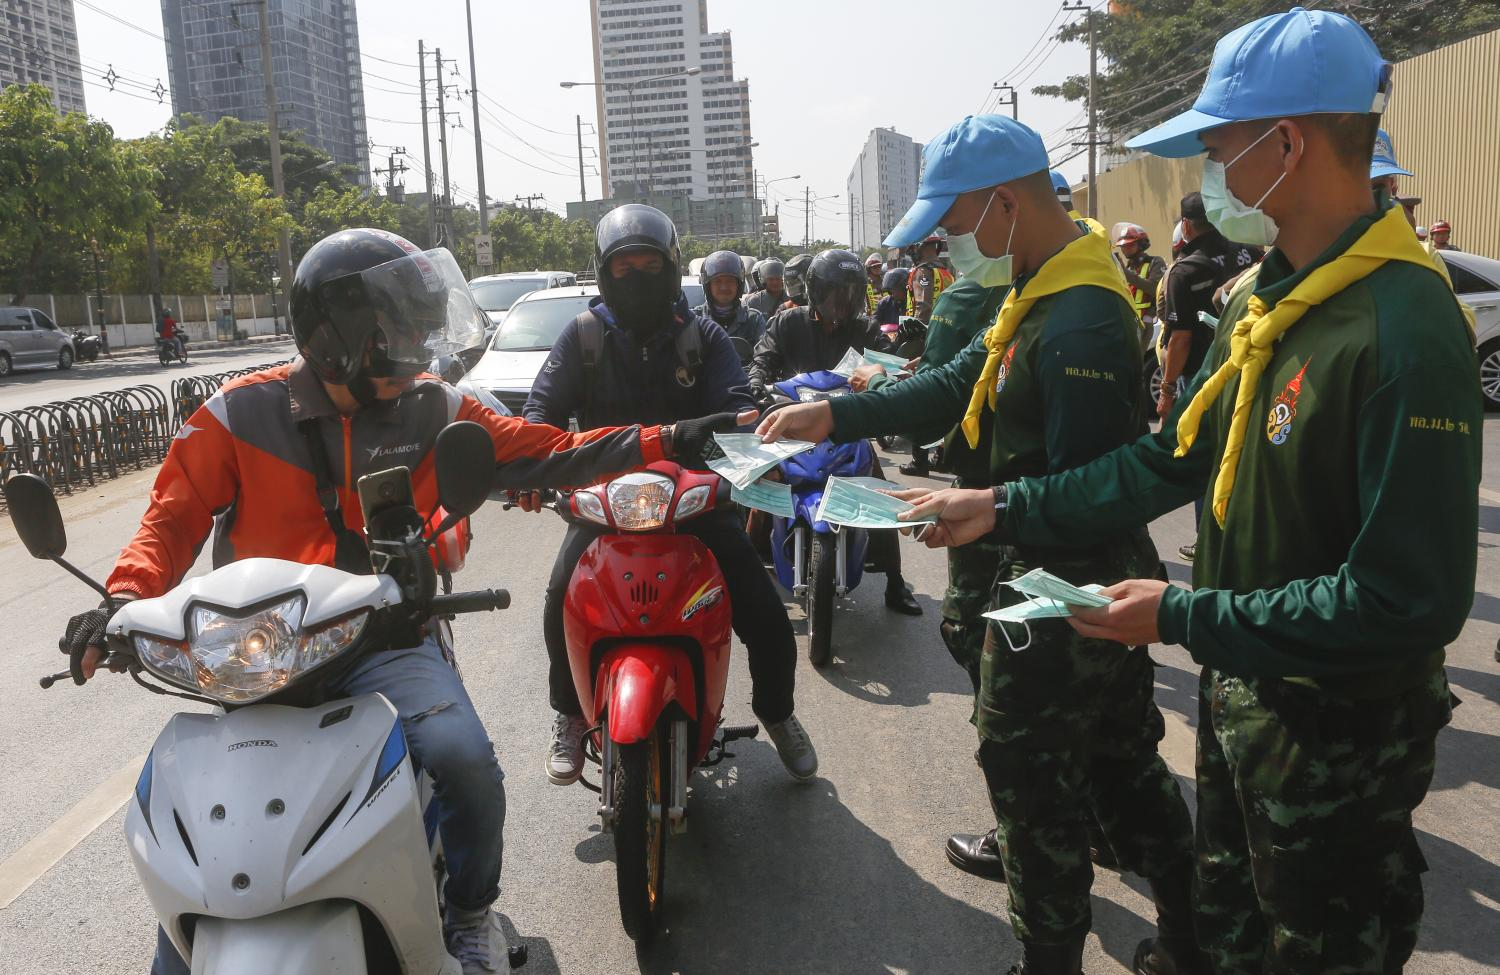 Royally sponsored 'Jit Arsa' volunteers from the 2nd Cavalry Division in Bangkok give away masks to commuters passing Queen Sirikit National Convention Centre on Ratchadaphisek Road amid concerns over PM2.5 levels and the air pollution crisis. (Photo byPattarapong Chatpattarasill)